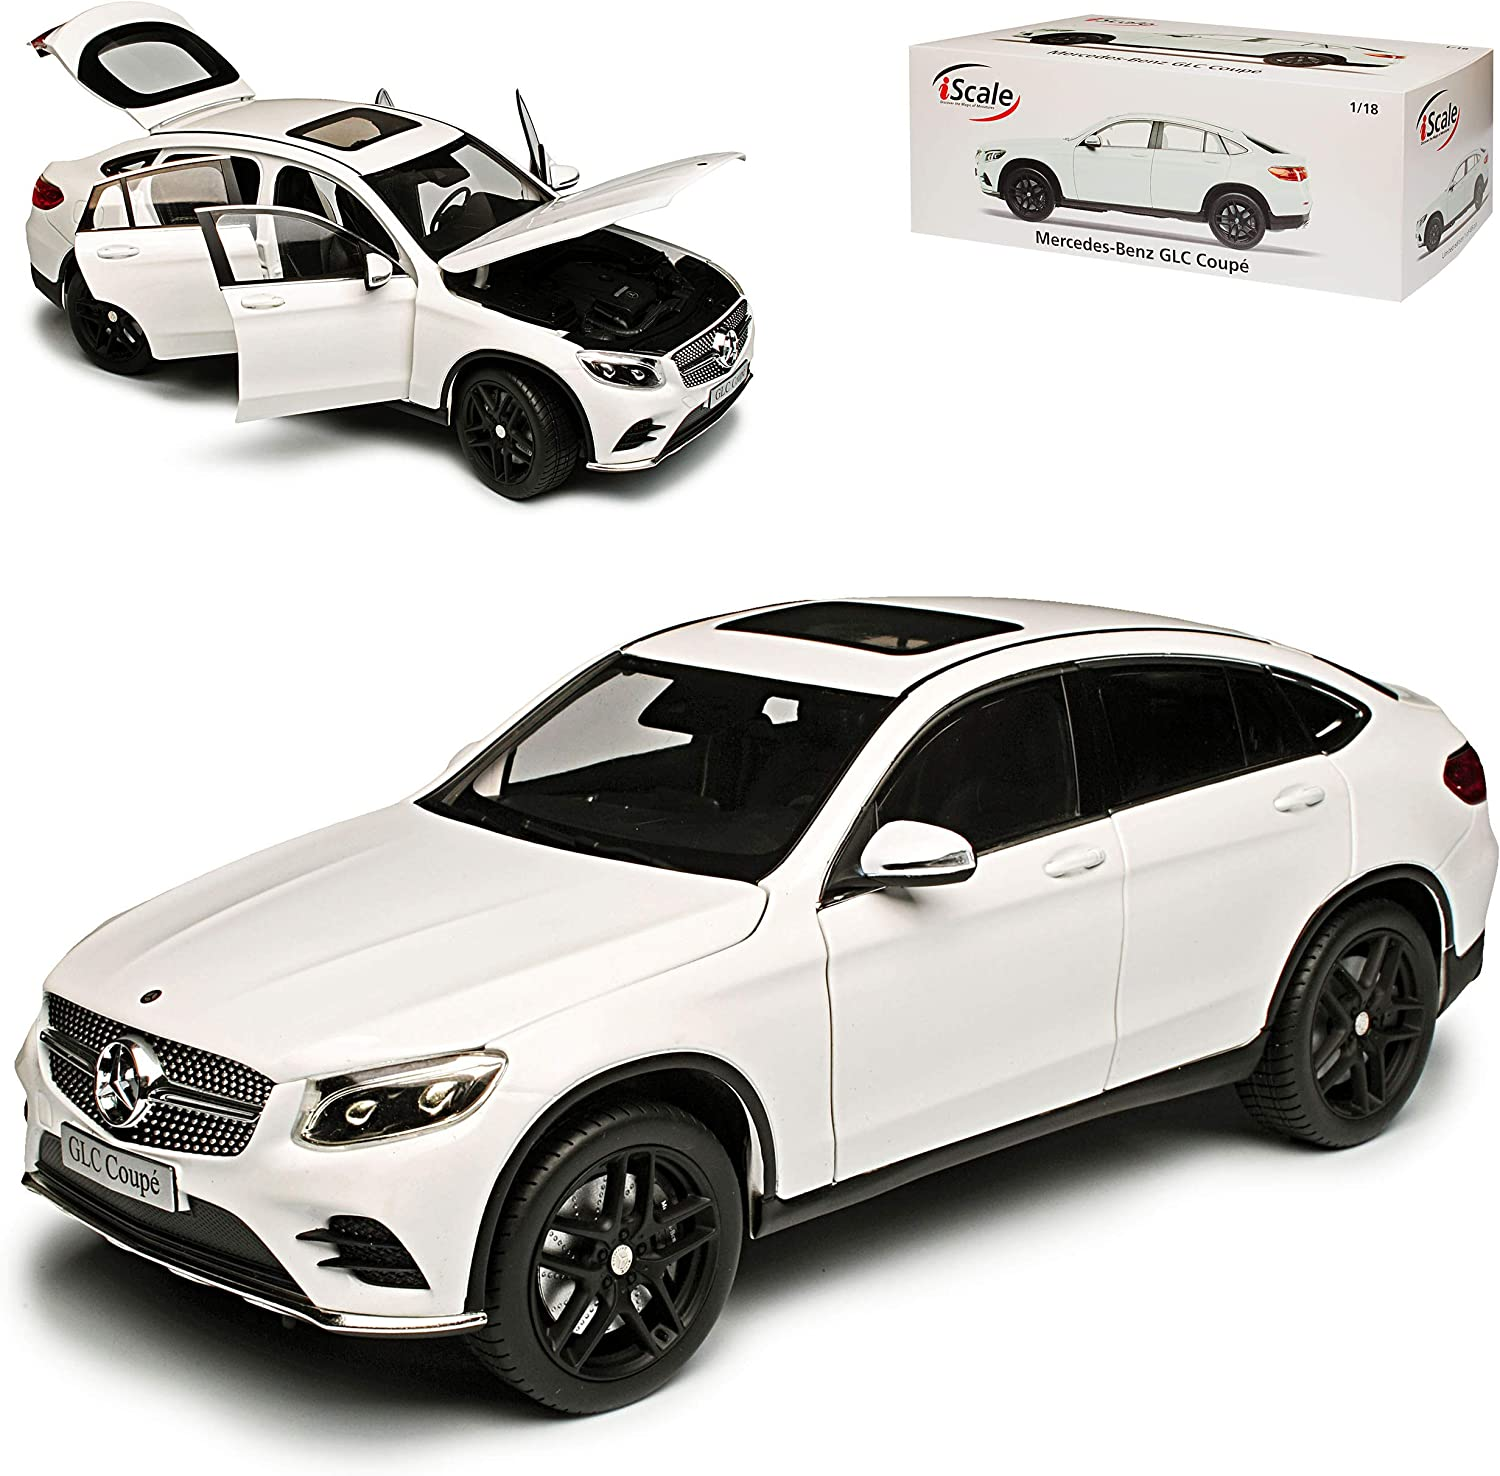 1:18 iScale Mercedes GLC-Class  Coupe 2018 black